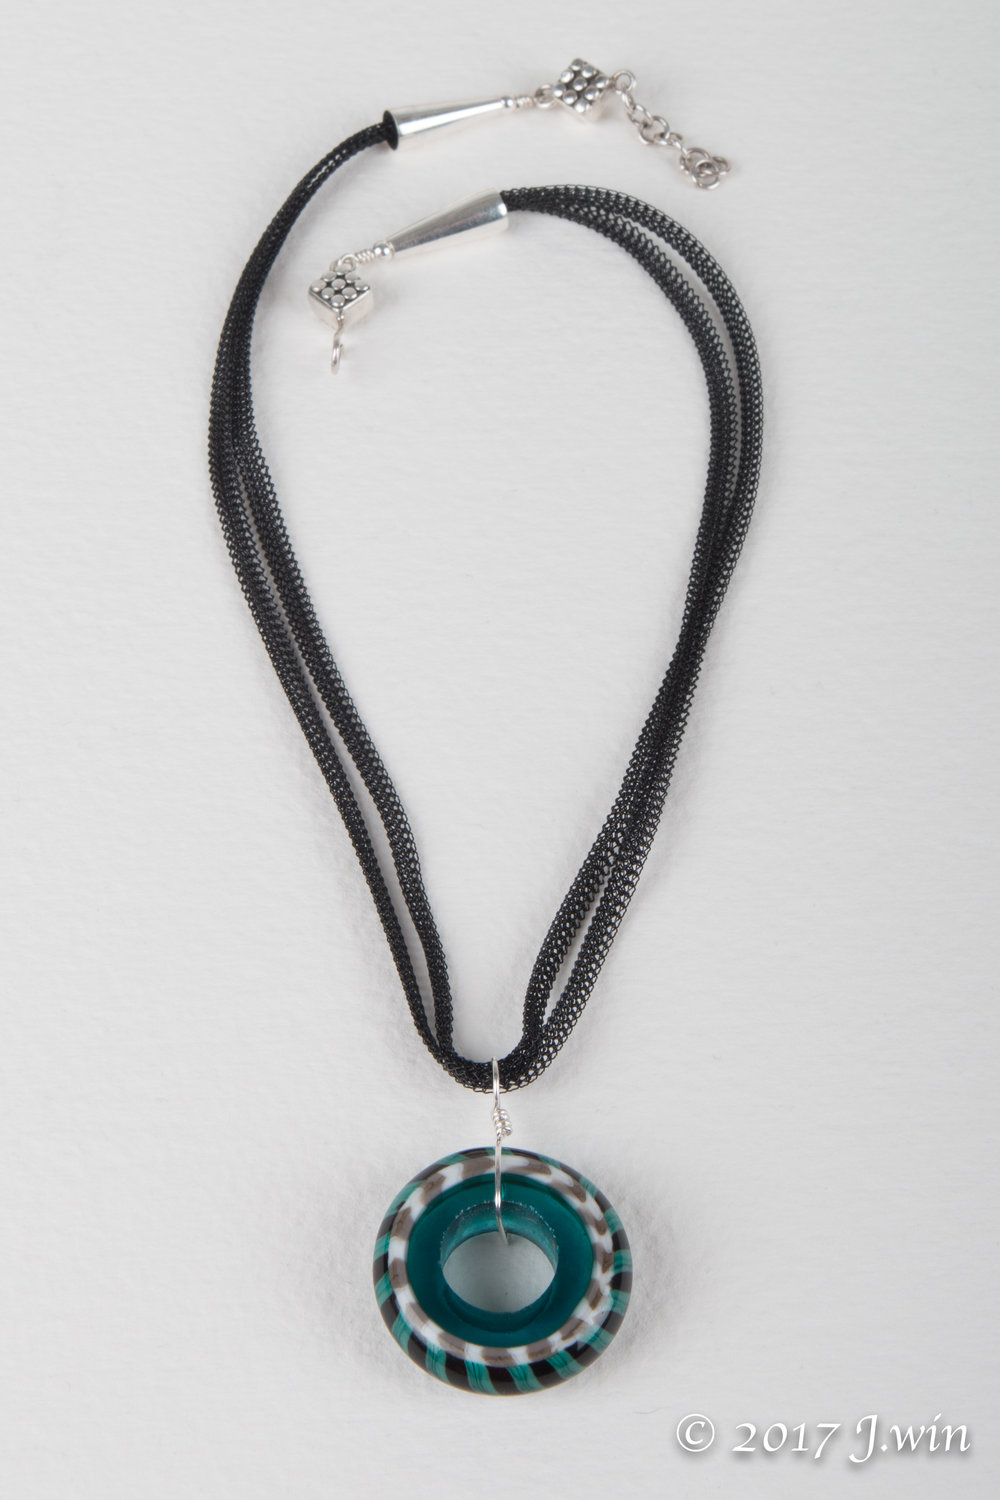 Hand made glass disc pendant necklace